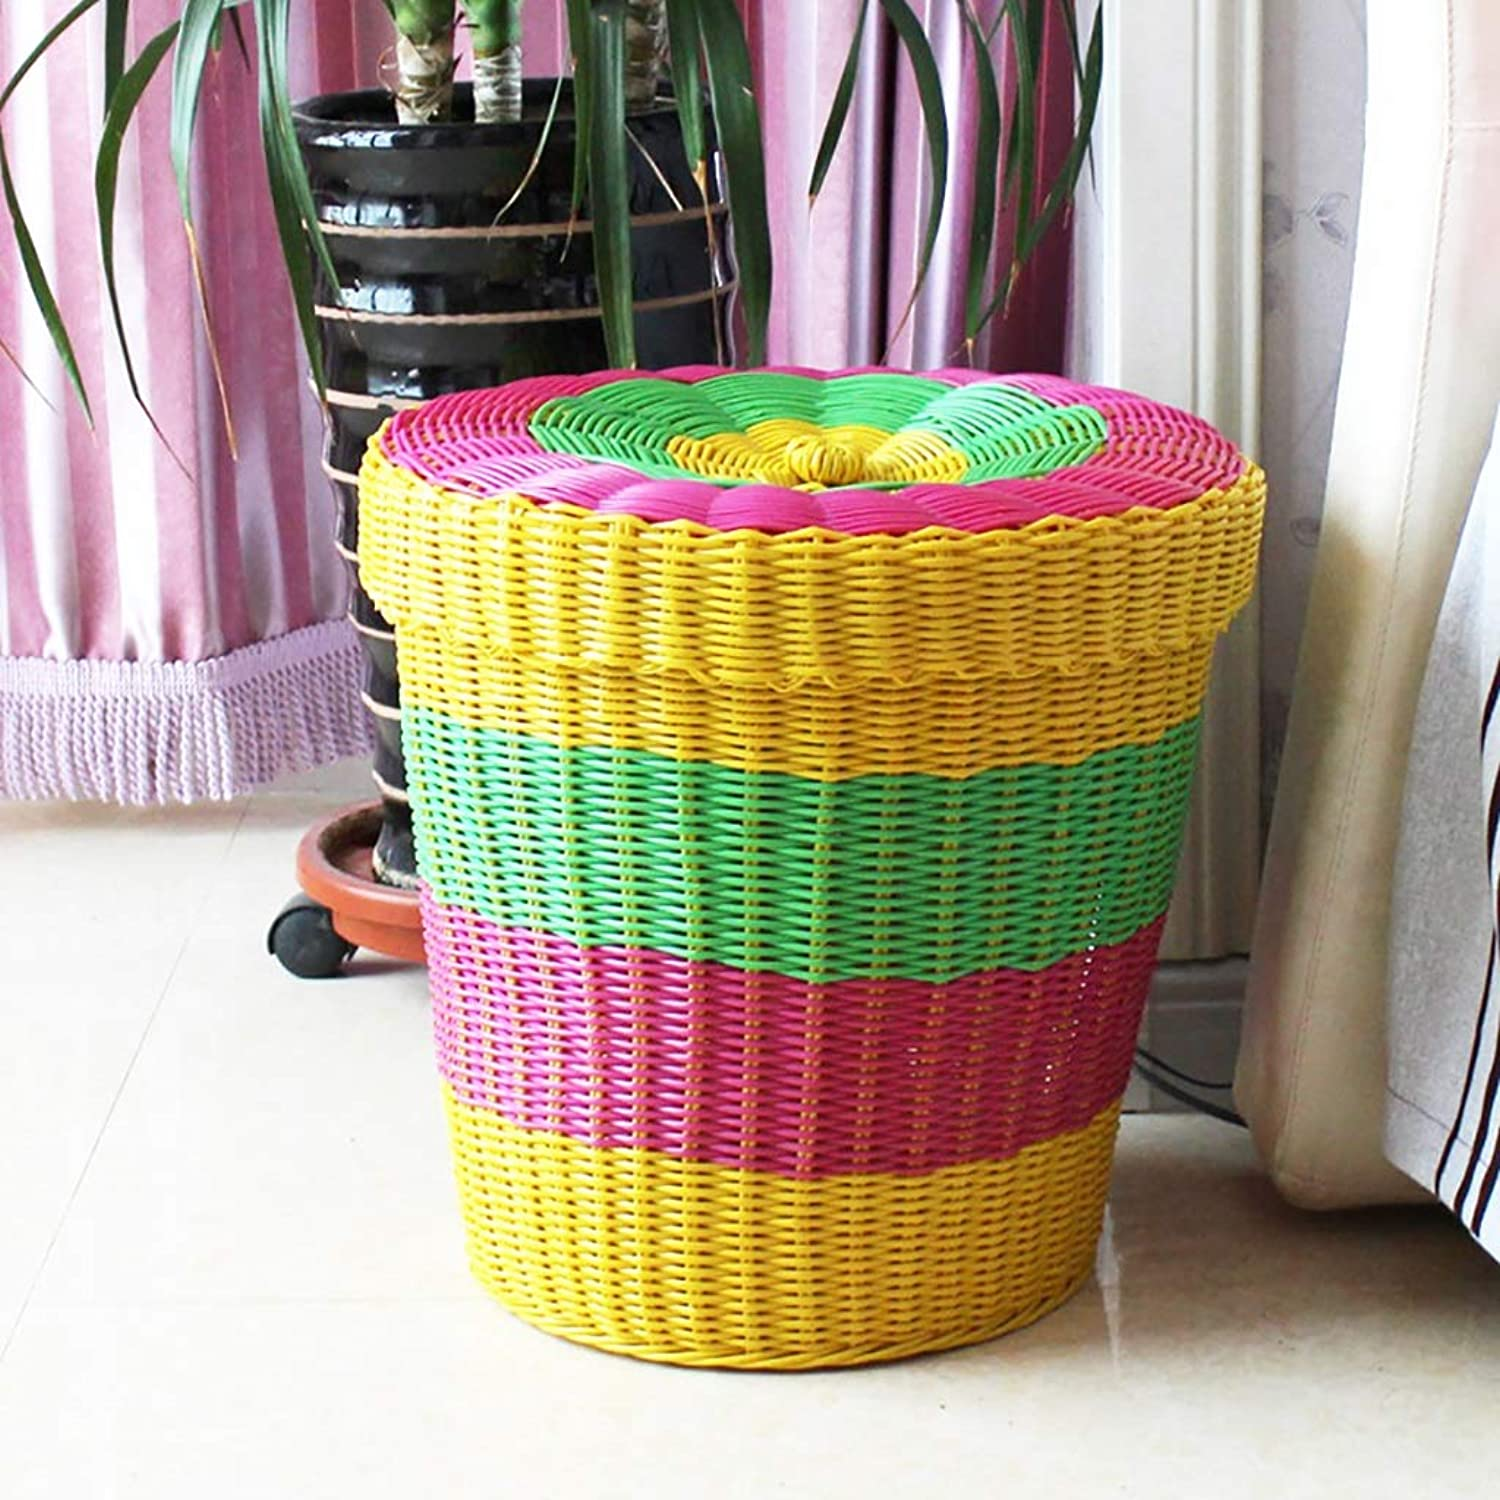 FANGFA Storage Baskets Plastic Hand Weaving Living Room Bedroom Clothes Toy Storage Box with lid Pink and Yellow (color   Yellow, Size   DH 40  37cm)